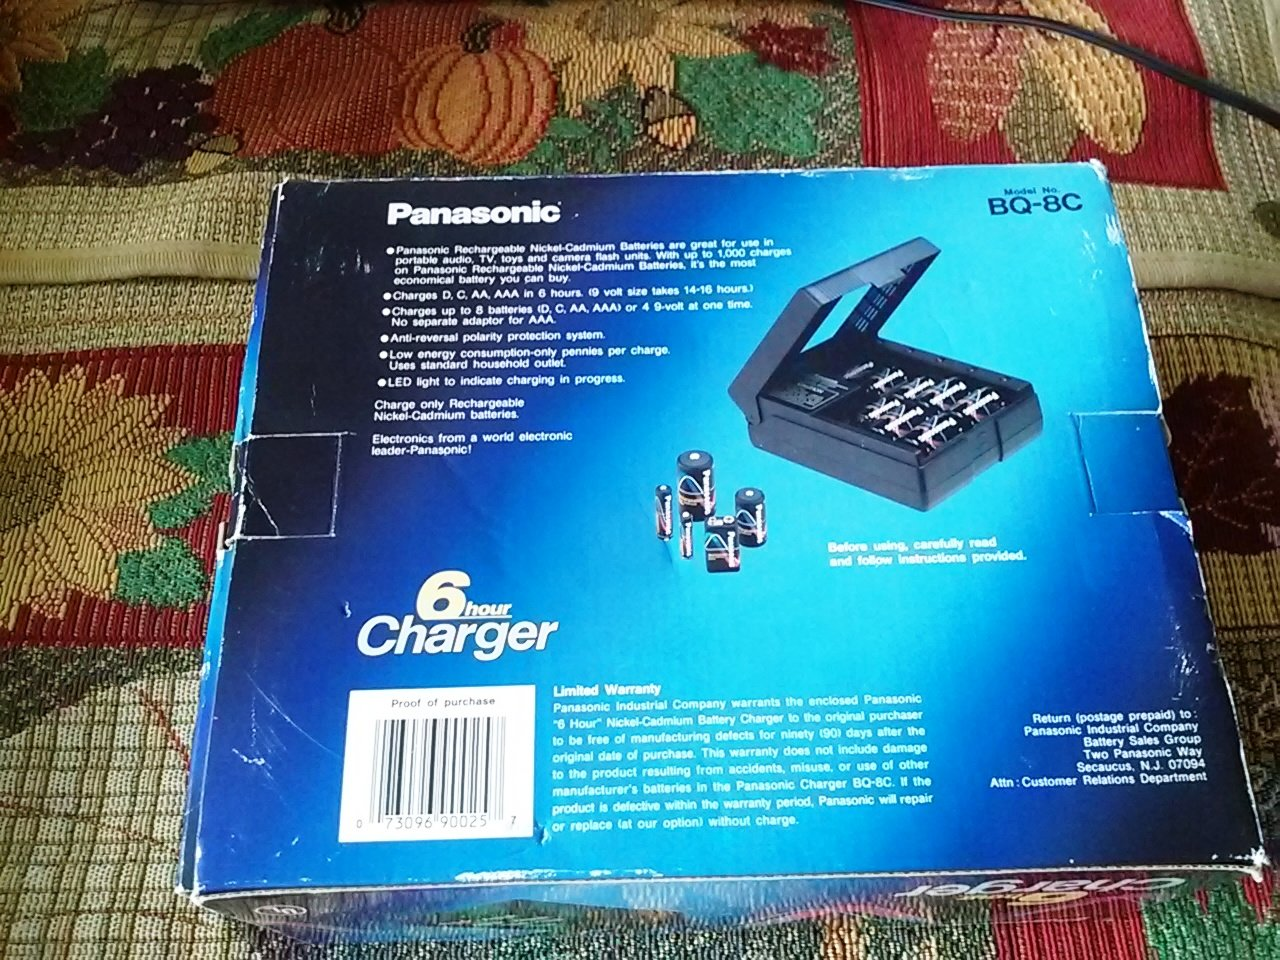 Panasonic Bq 8c Multi Battery Charger Aa Aaa D C 9v Nicad By Ic Ca3140e Batteries Home Audio Theater